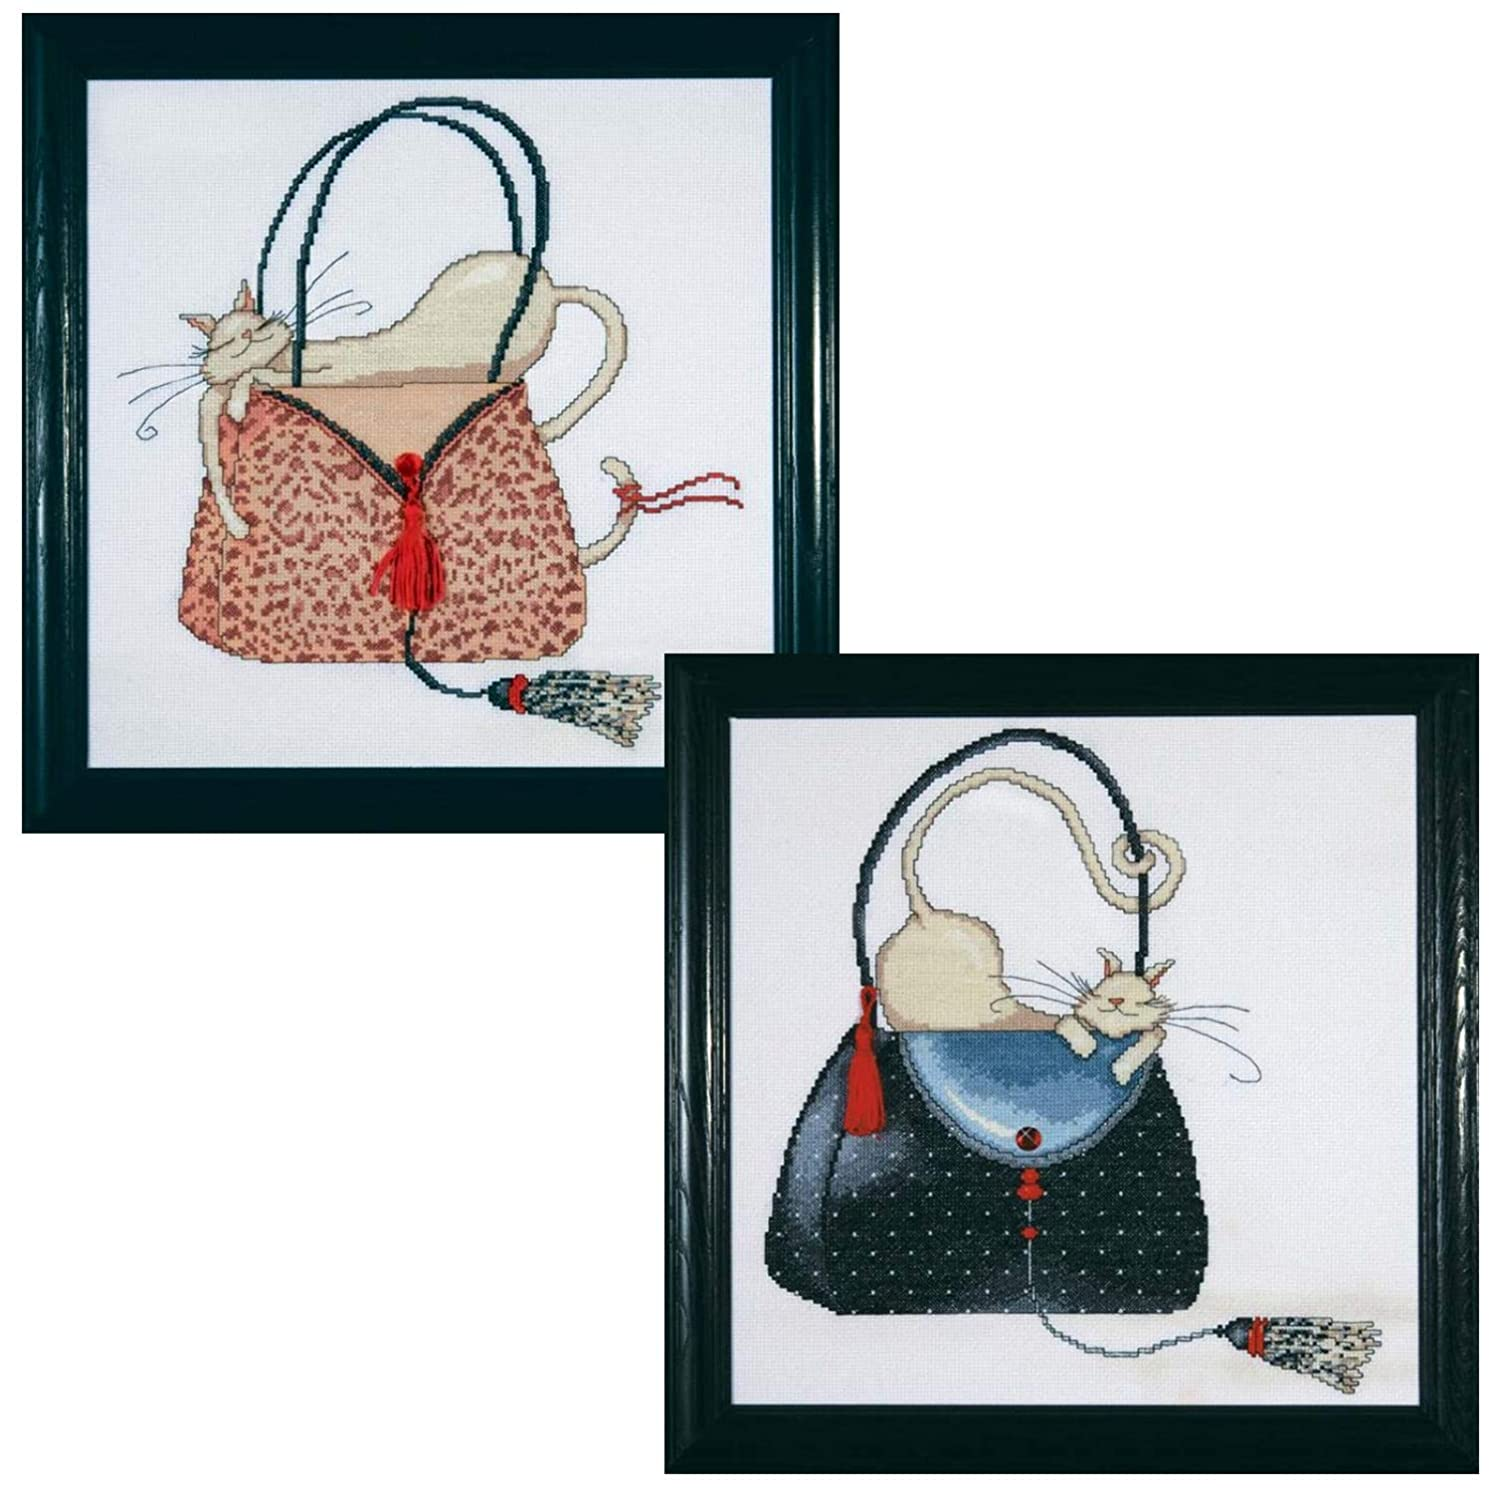 Design Works - Women's Décor Counted Cross Stitch Kits - Leopard Purse, Polka Dot Purse with 2 Gift Cards